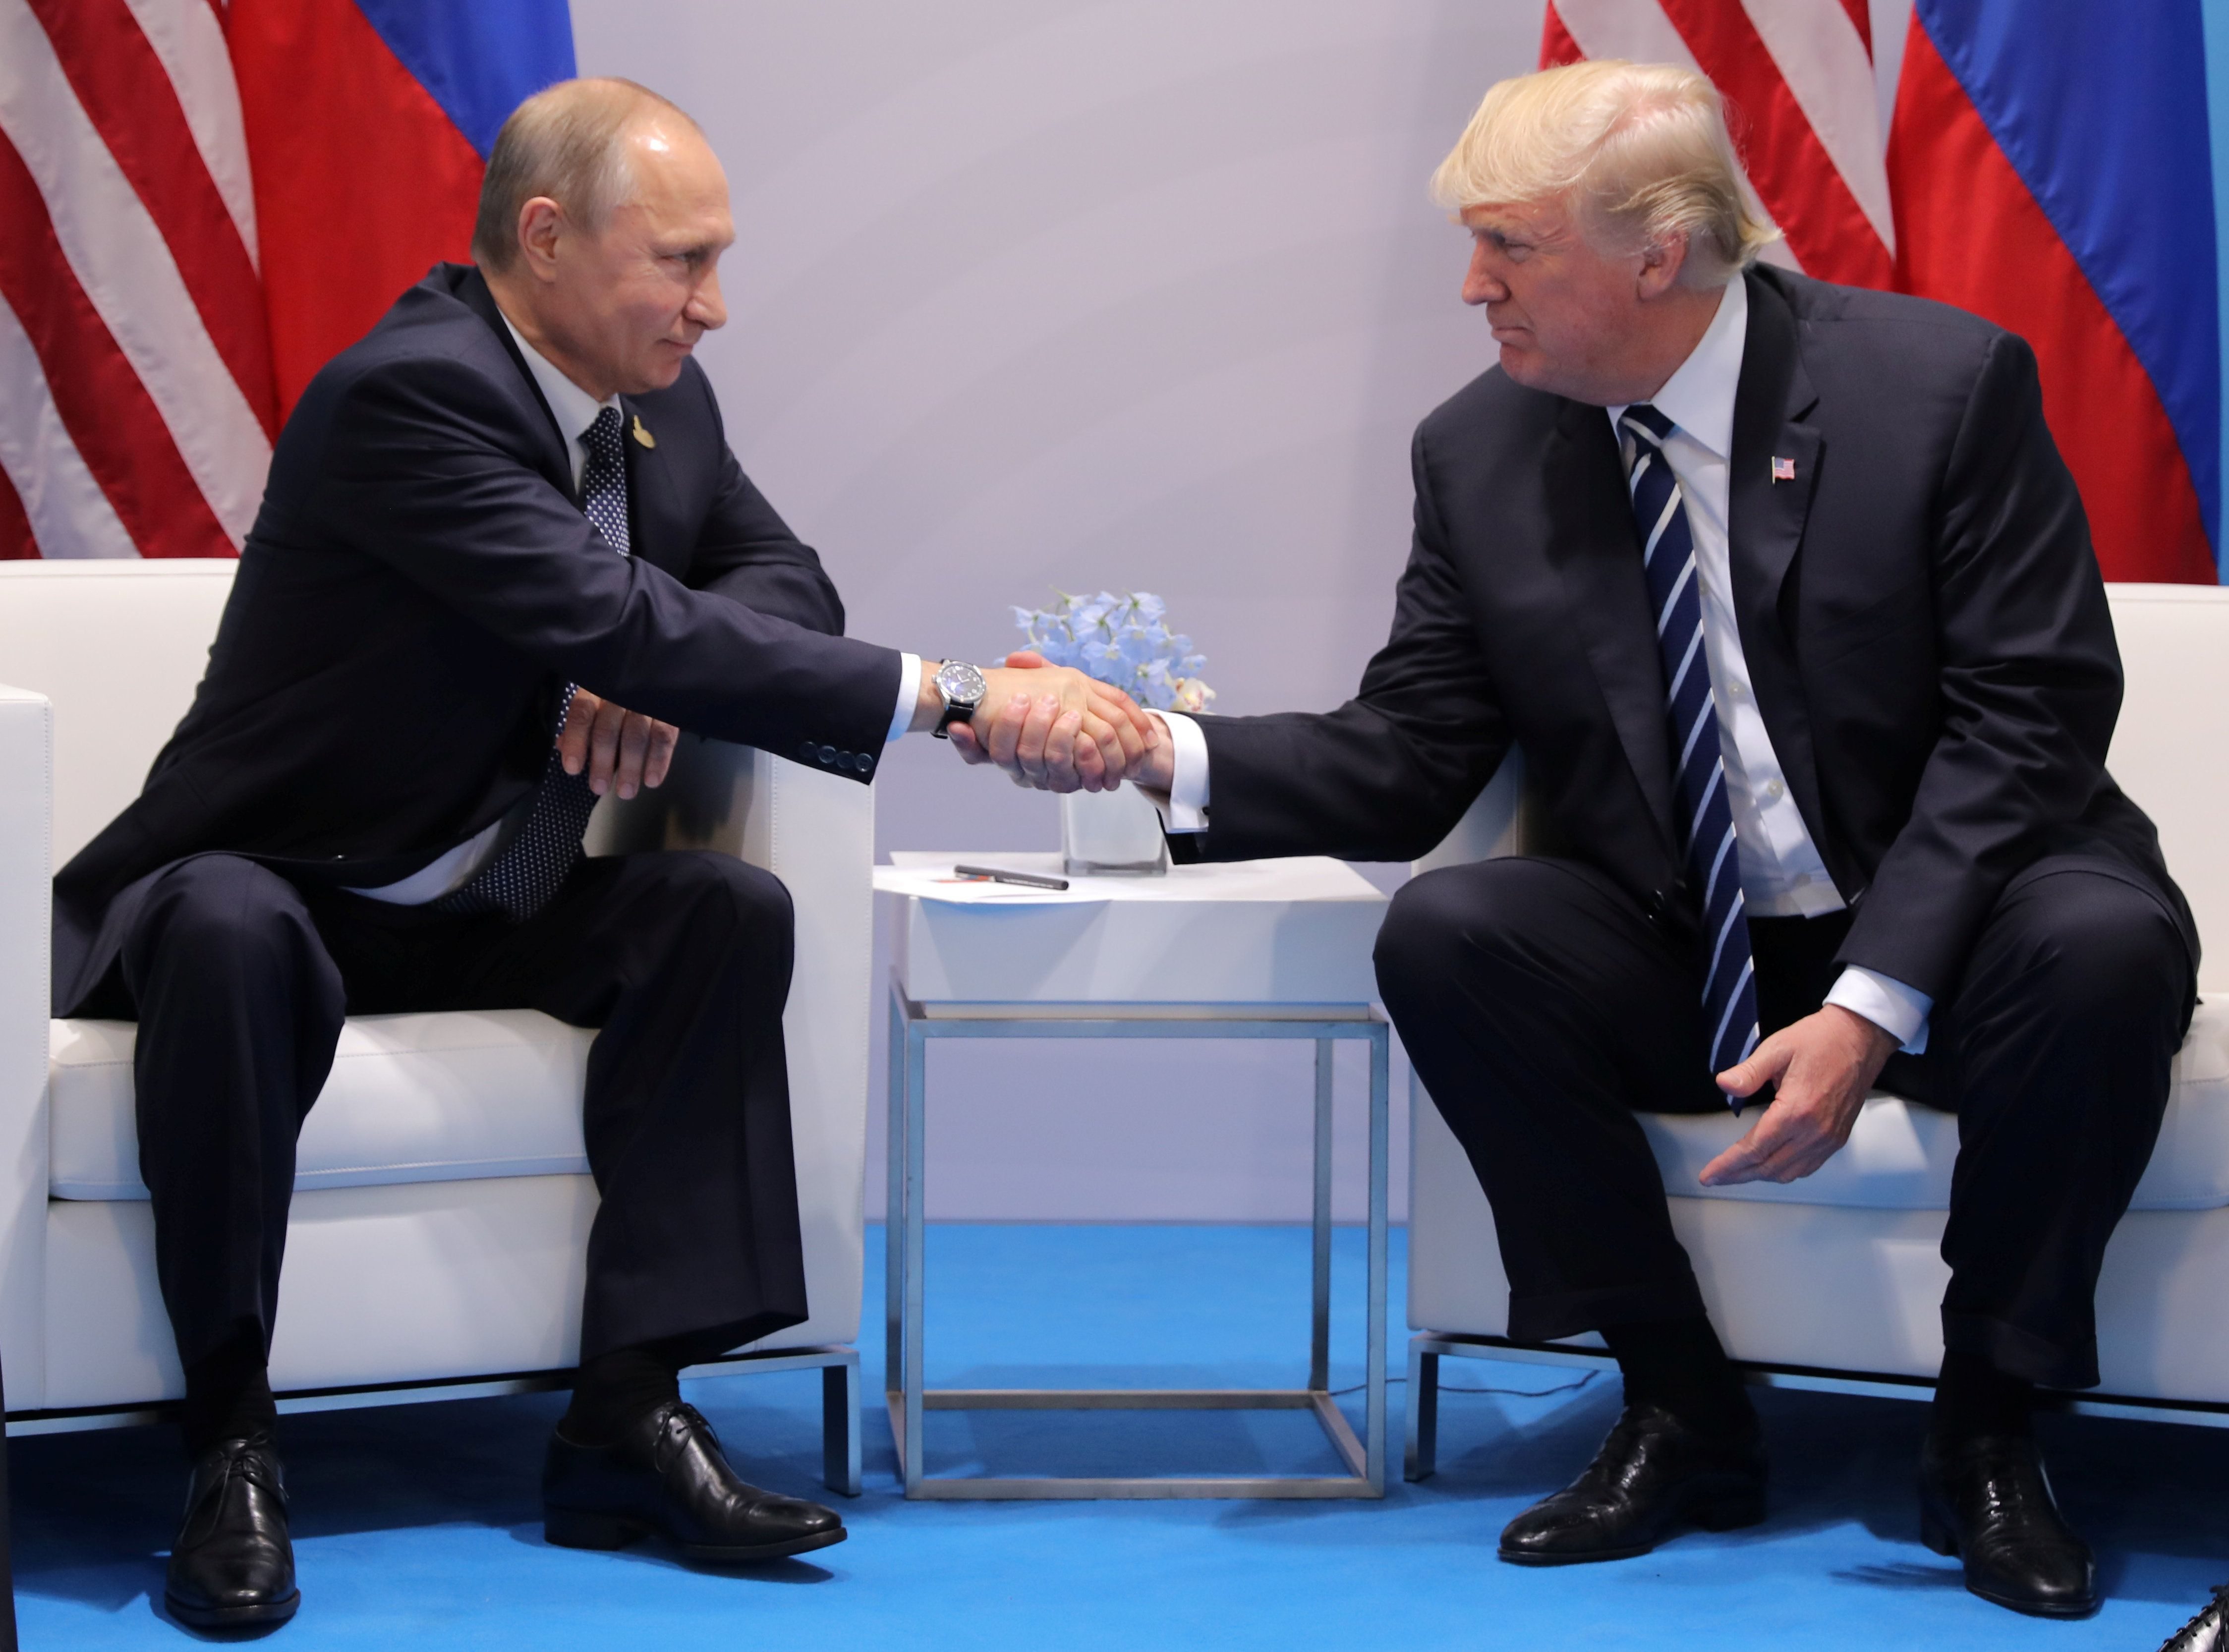 U.S. President Donald Trump shakes hands with Russia's President Vladimir Putin during their bilateral meeting at the G20 summit in Hamburg, Germany July 7, 2017.    REUTERS/Carlos Barria